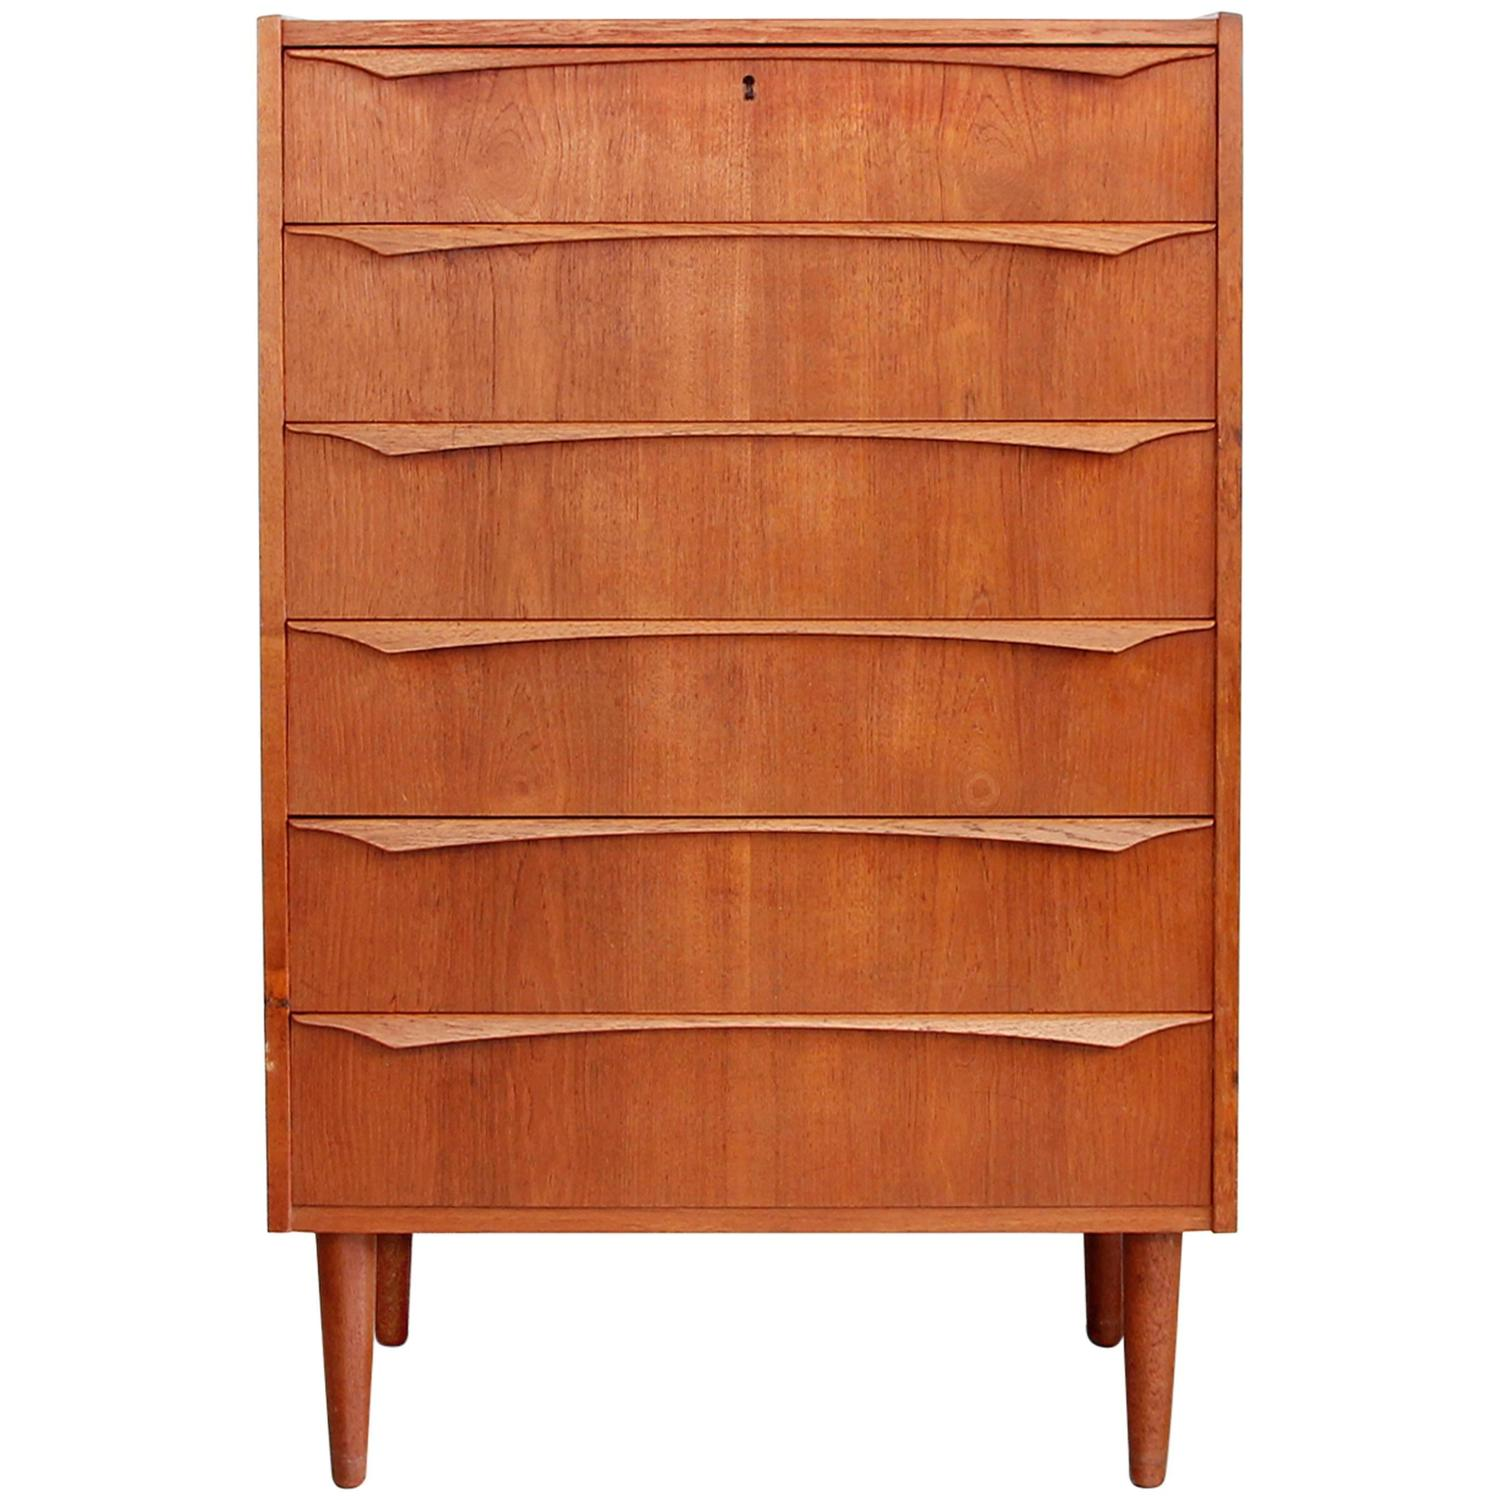 Tall danish modern teak chest of drawers mid century